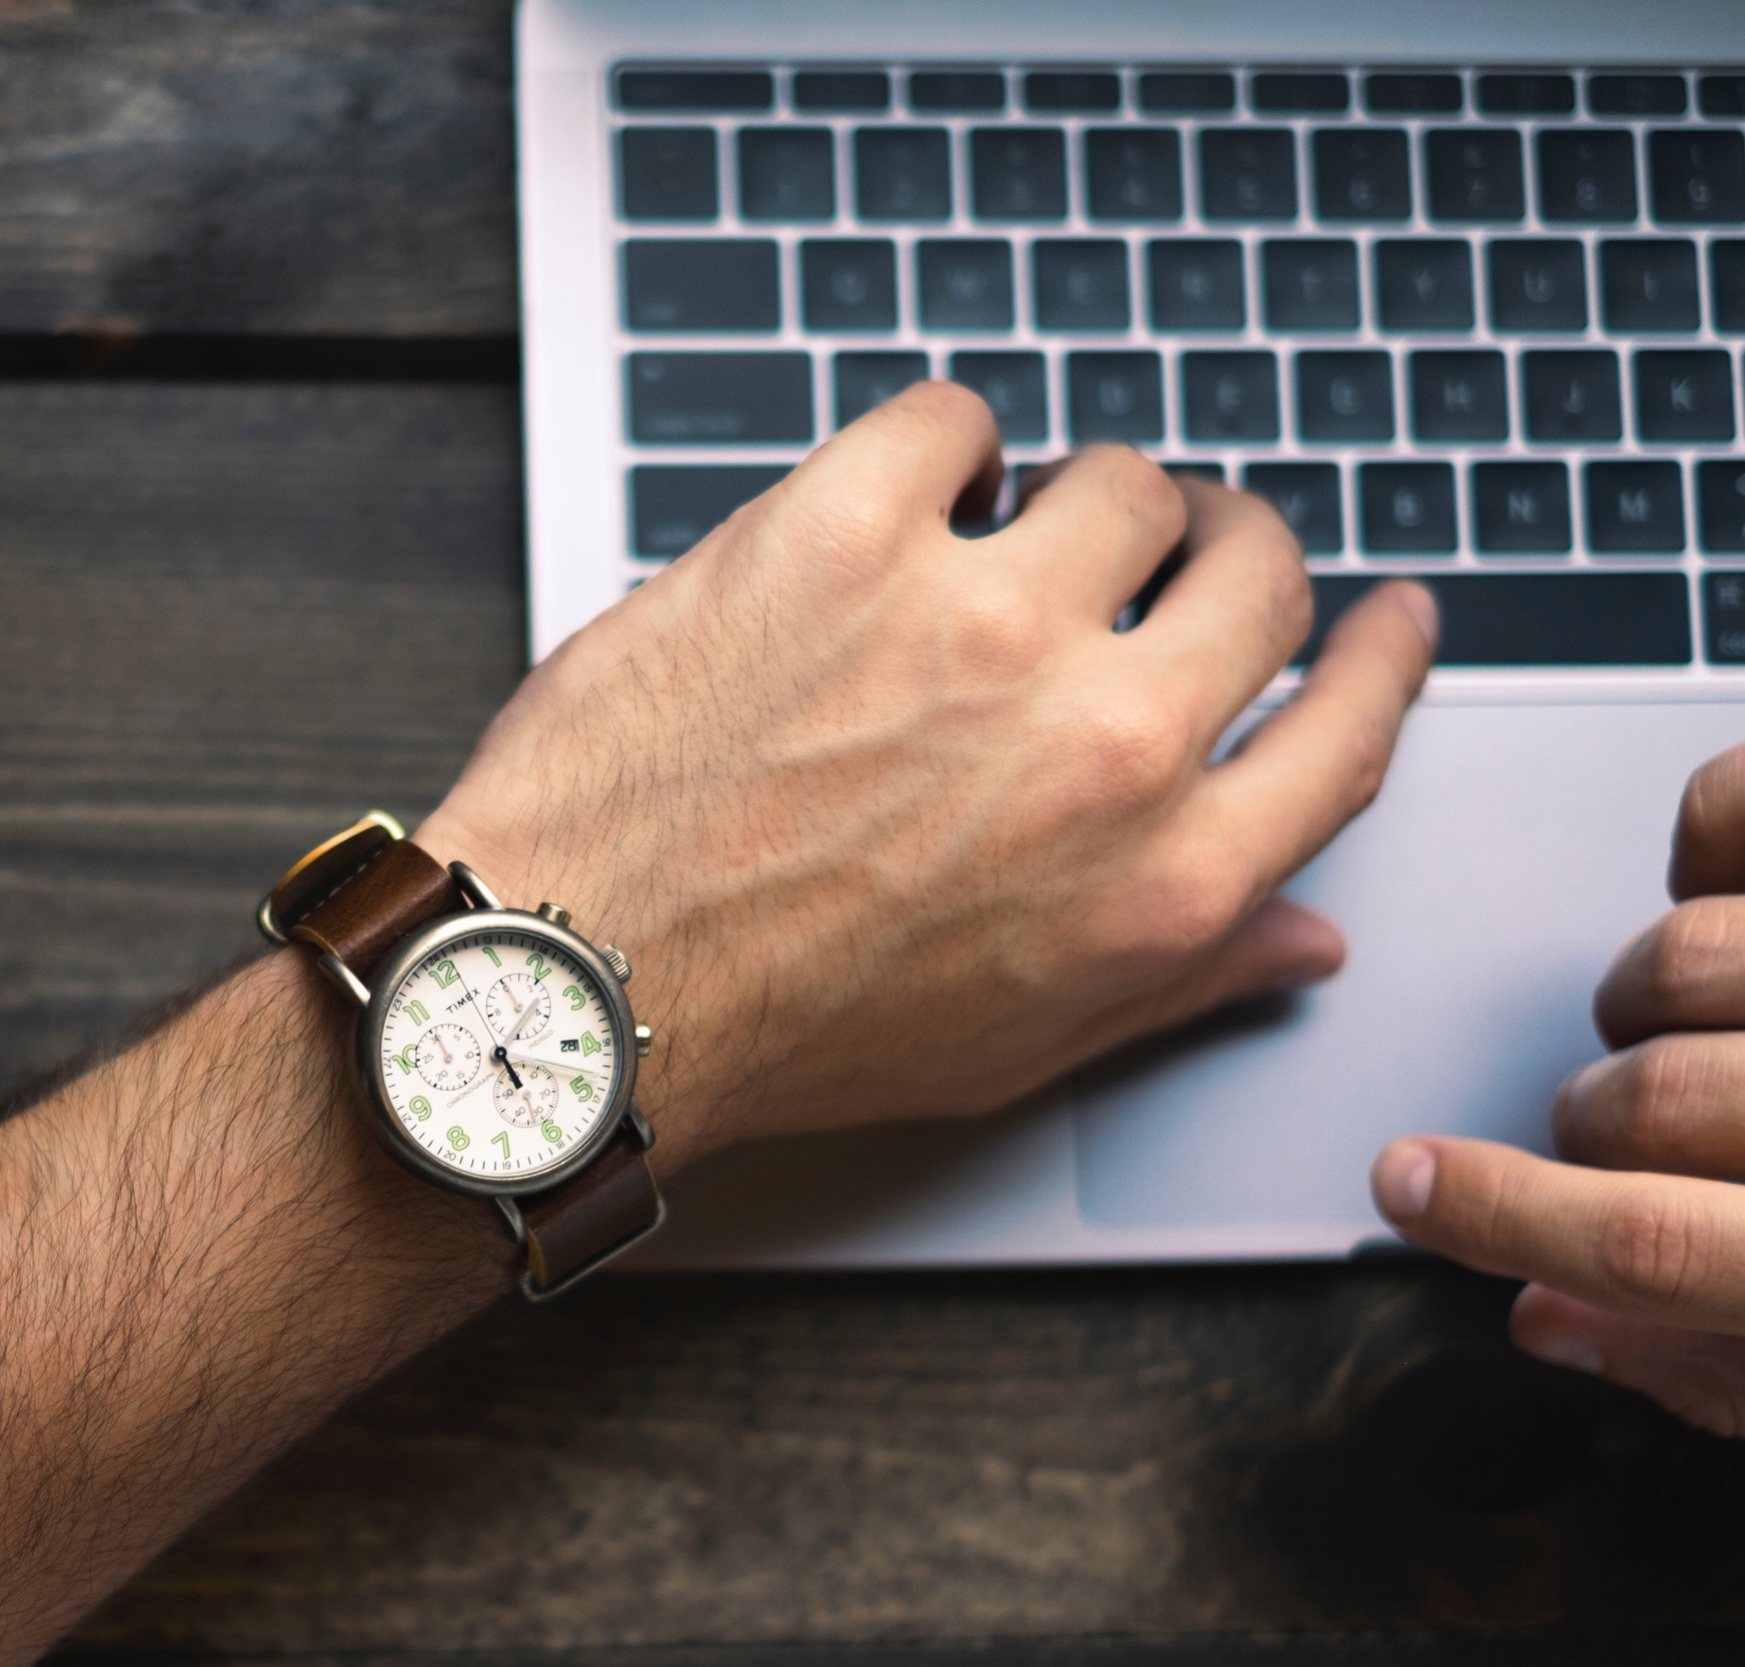 Your website shouldn't leave people staring at their watch.